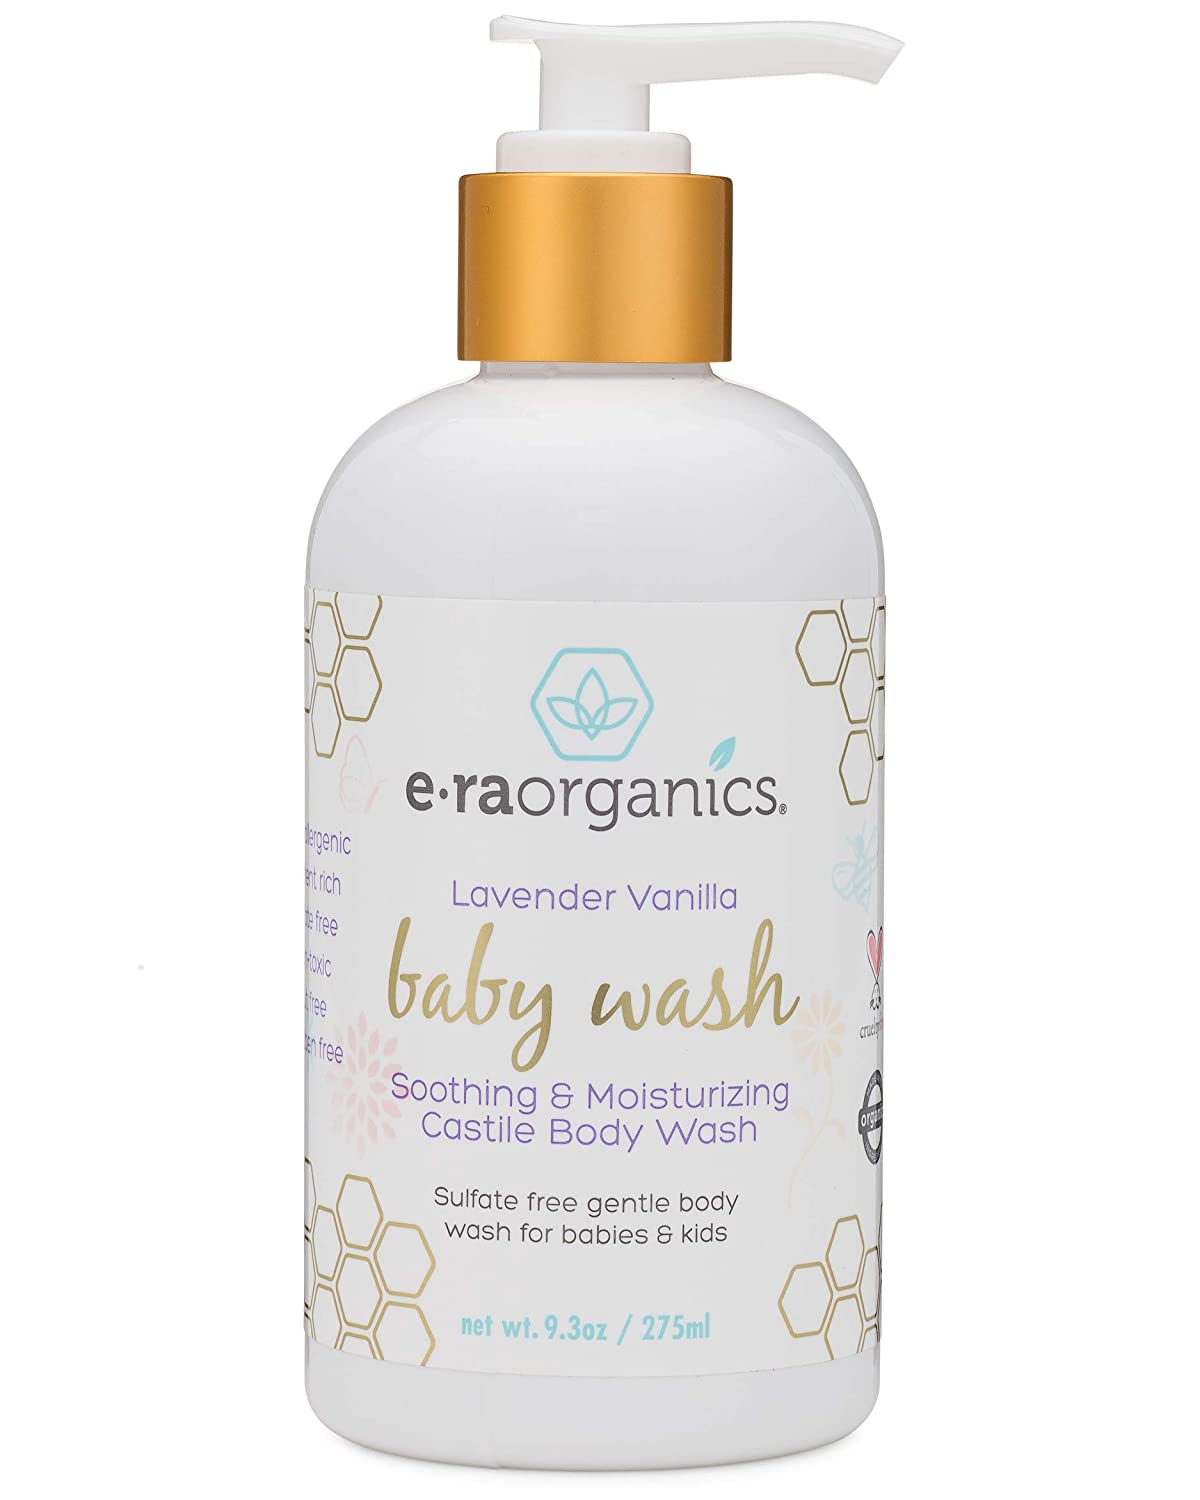 Top 9 Best Organic Baby Shampoo Reviews in 2020 3